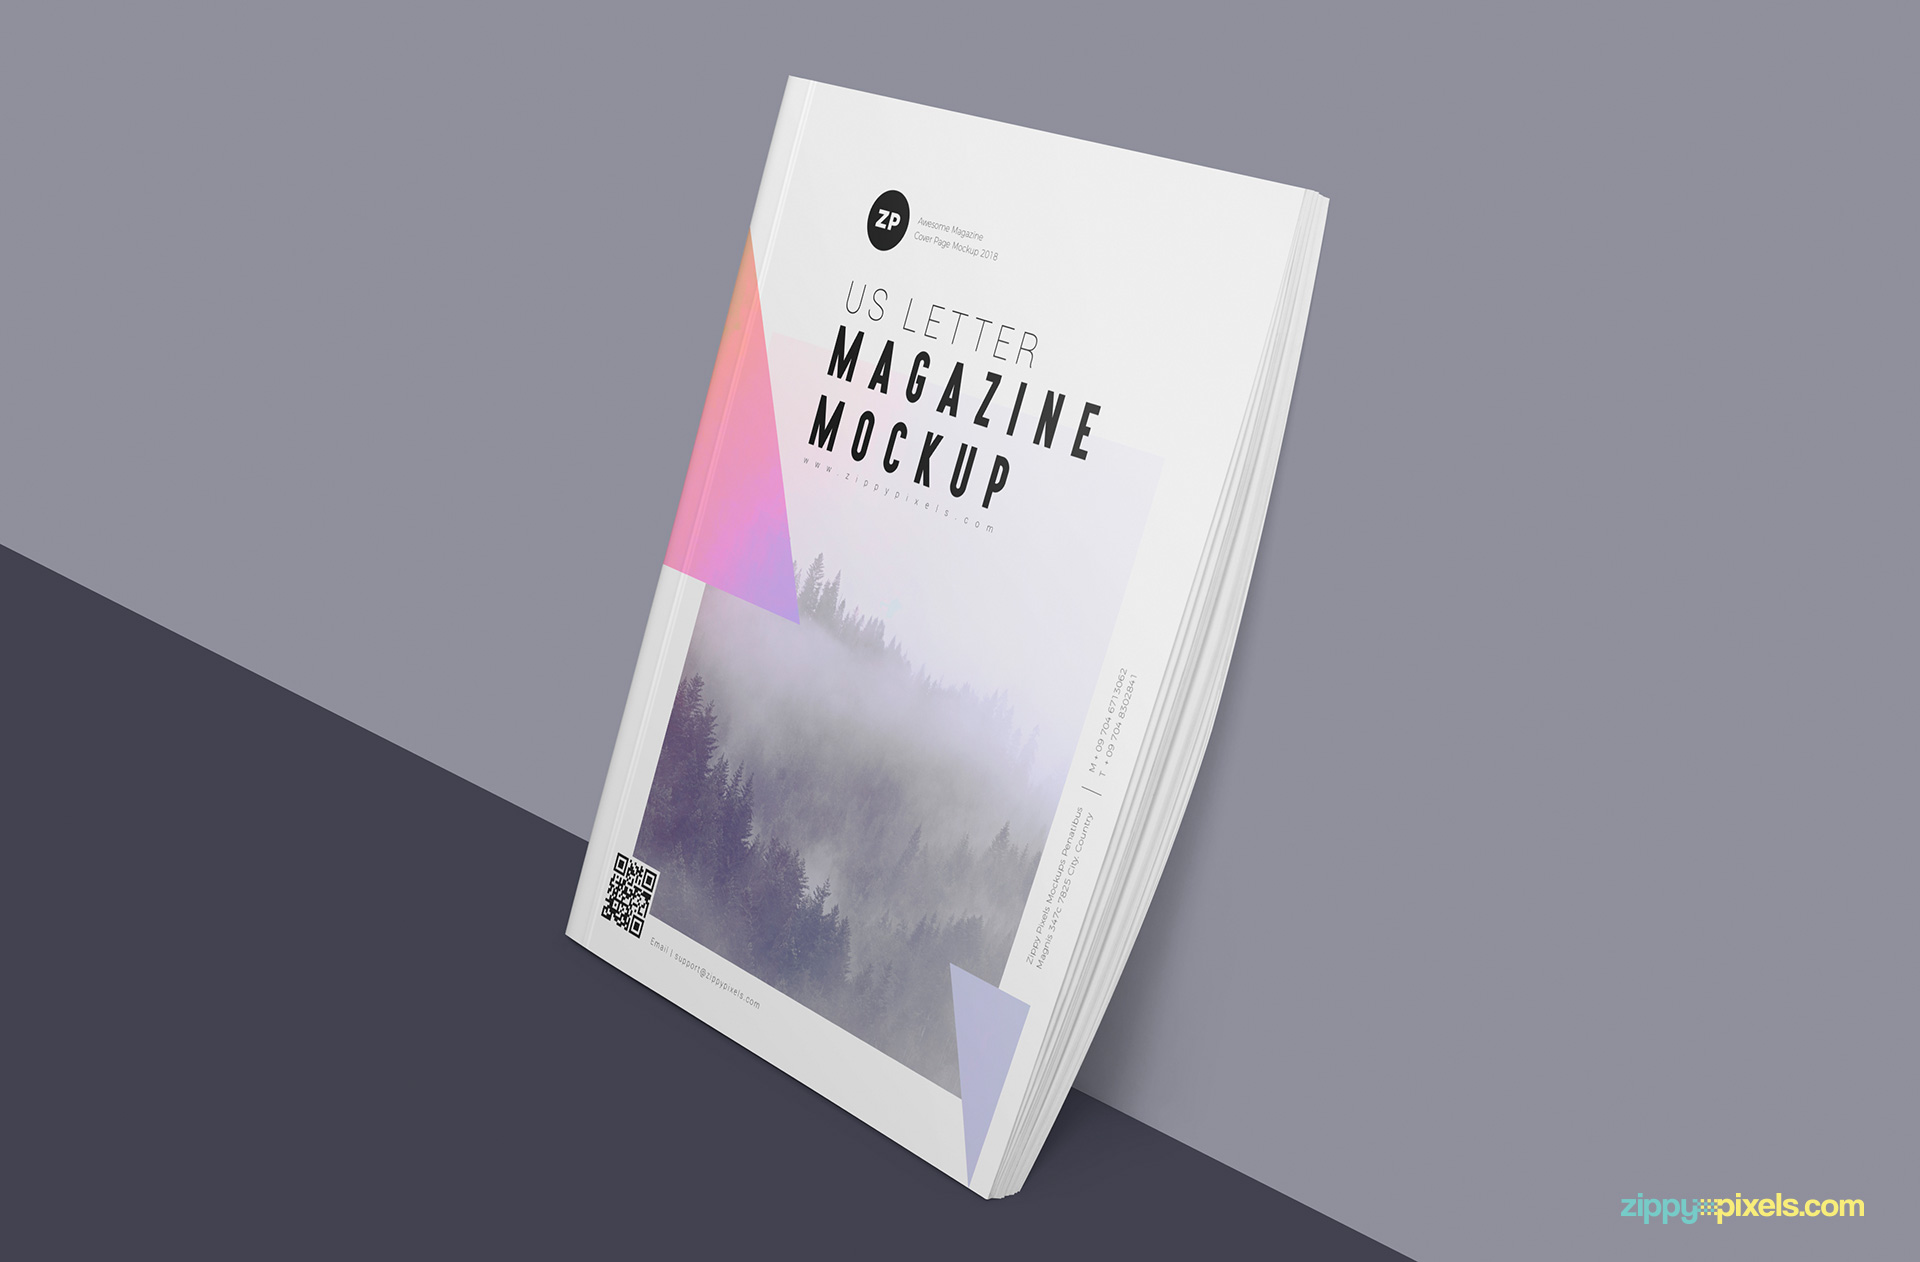 You can edit stack of this free magazine mockup.